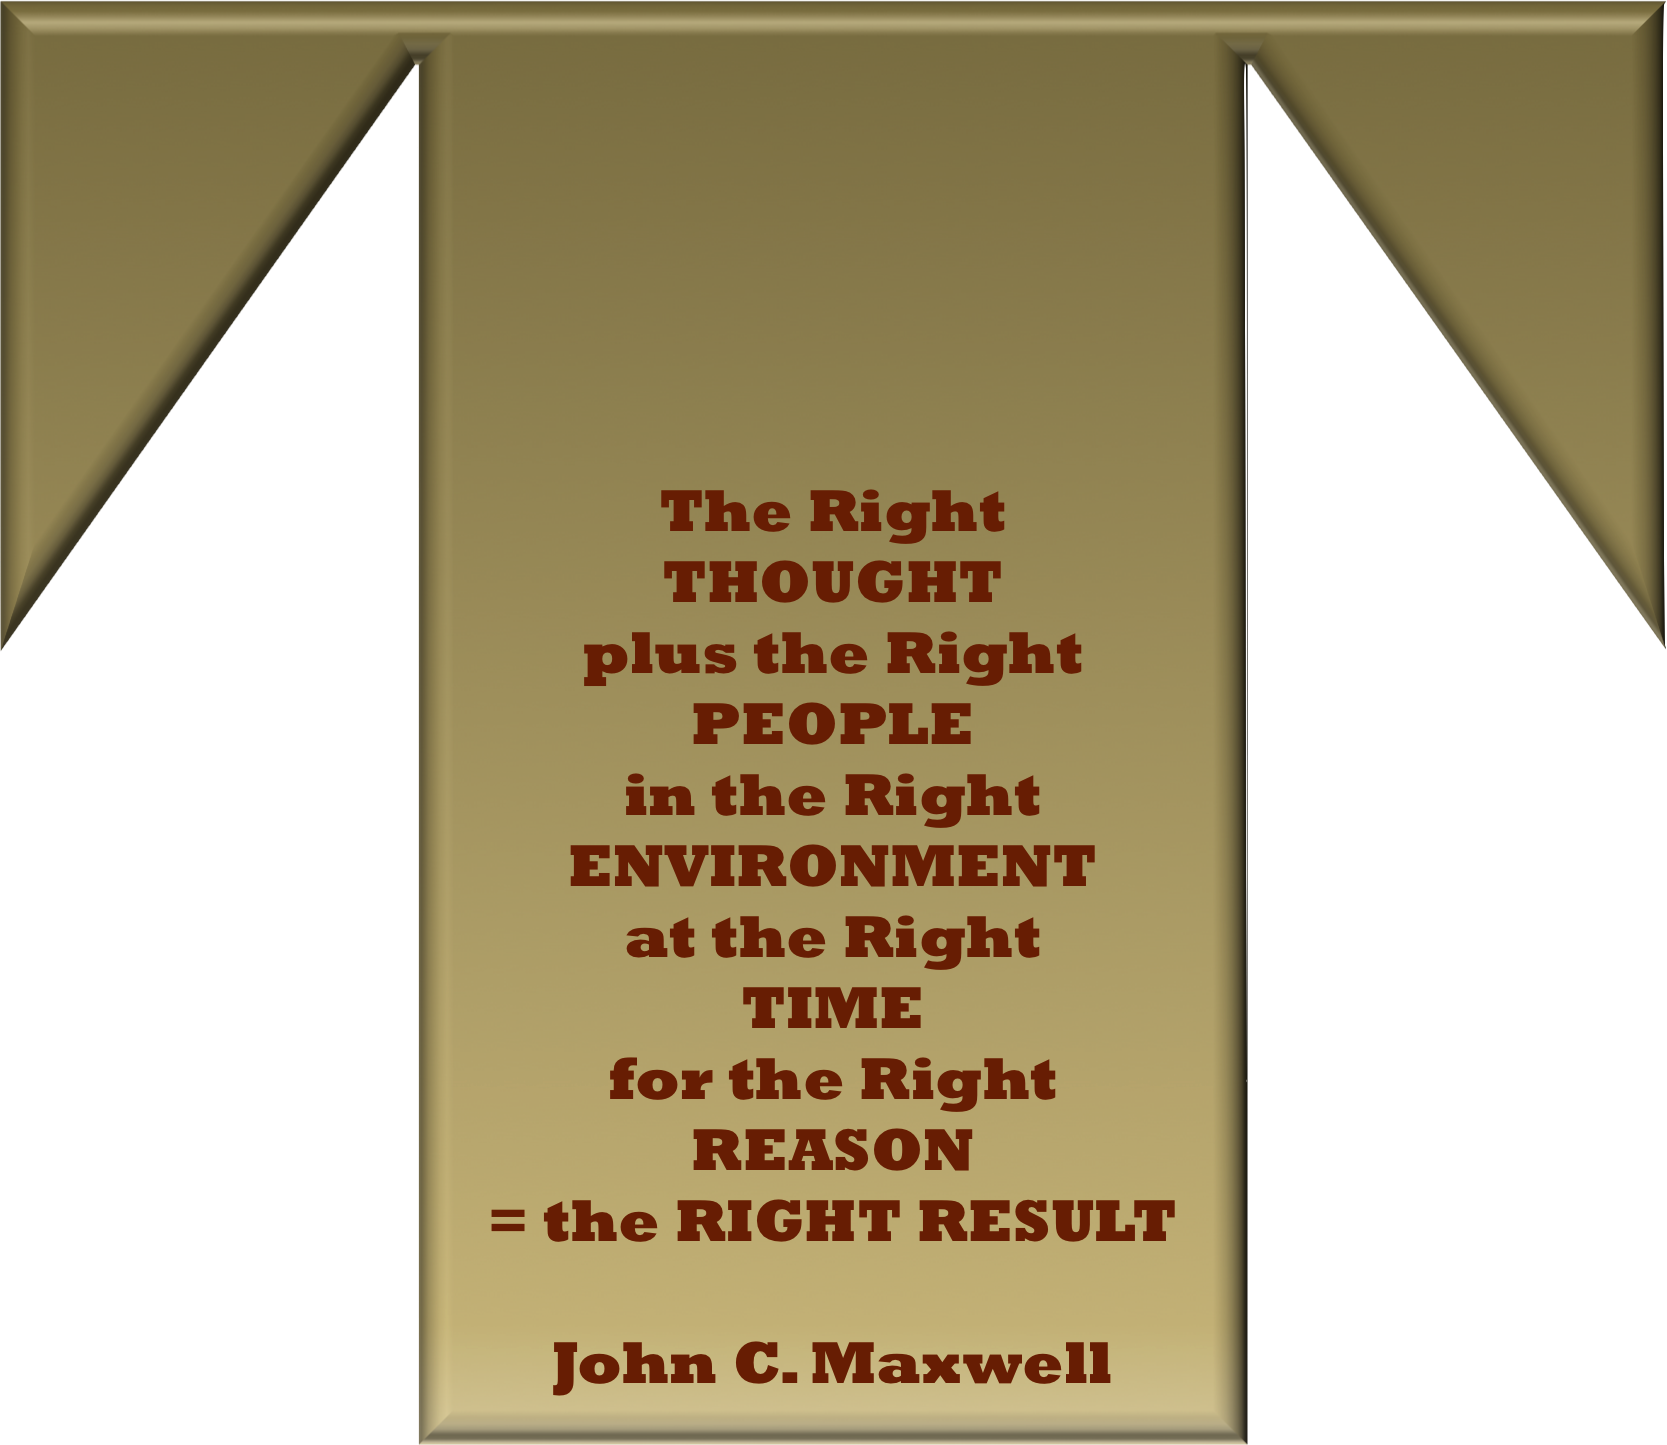 The Right THOUGHT plus the Right PEOPLE in the Right ENVIRONMENT at the Right TIME for the Right REASON = the RIGHT RESULT! - John C. Maxwell #Quotes #Talentbook #BigPictureThinking #Teamworkmakesthedreamwork